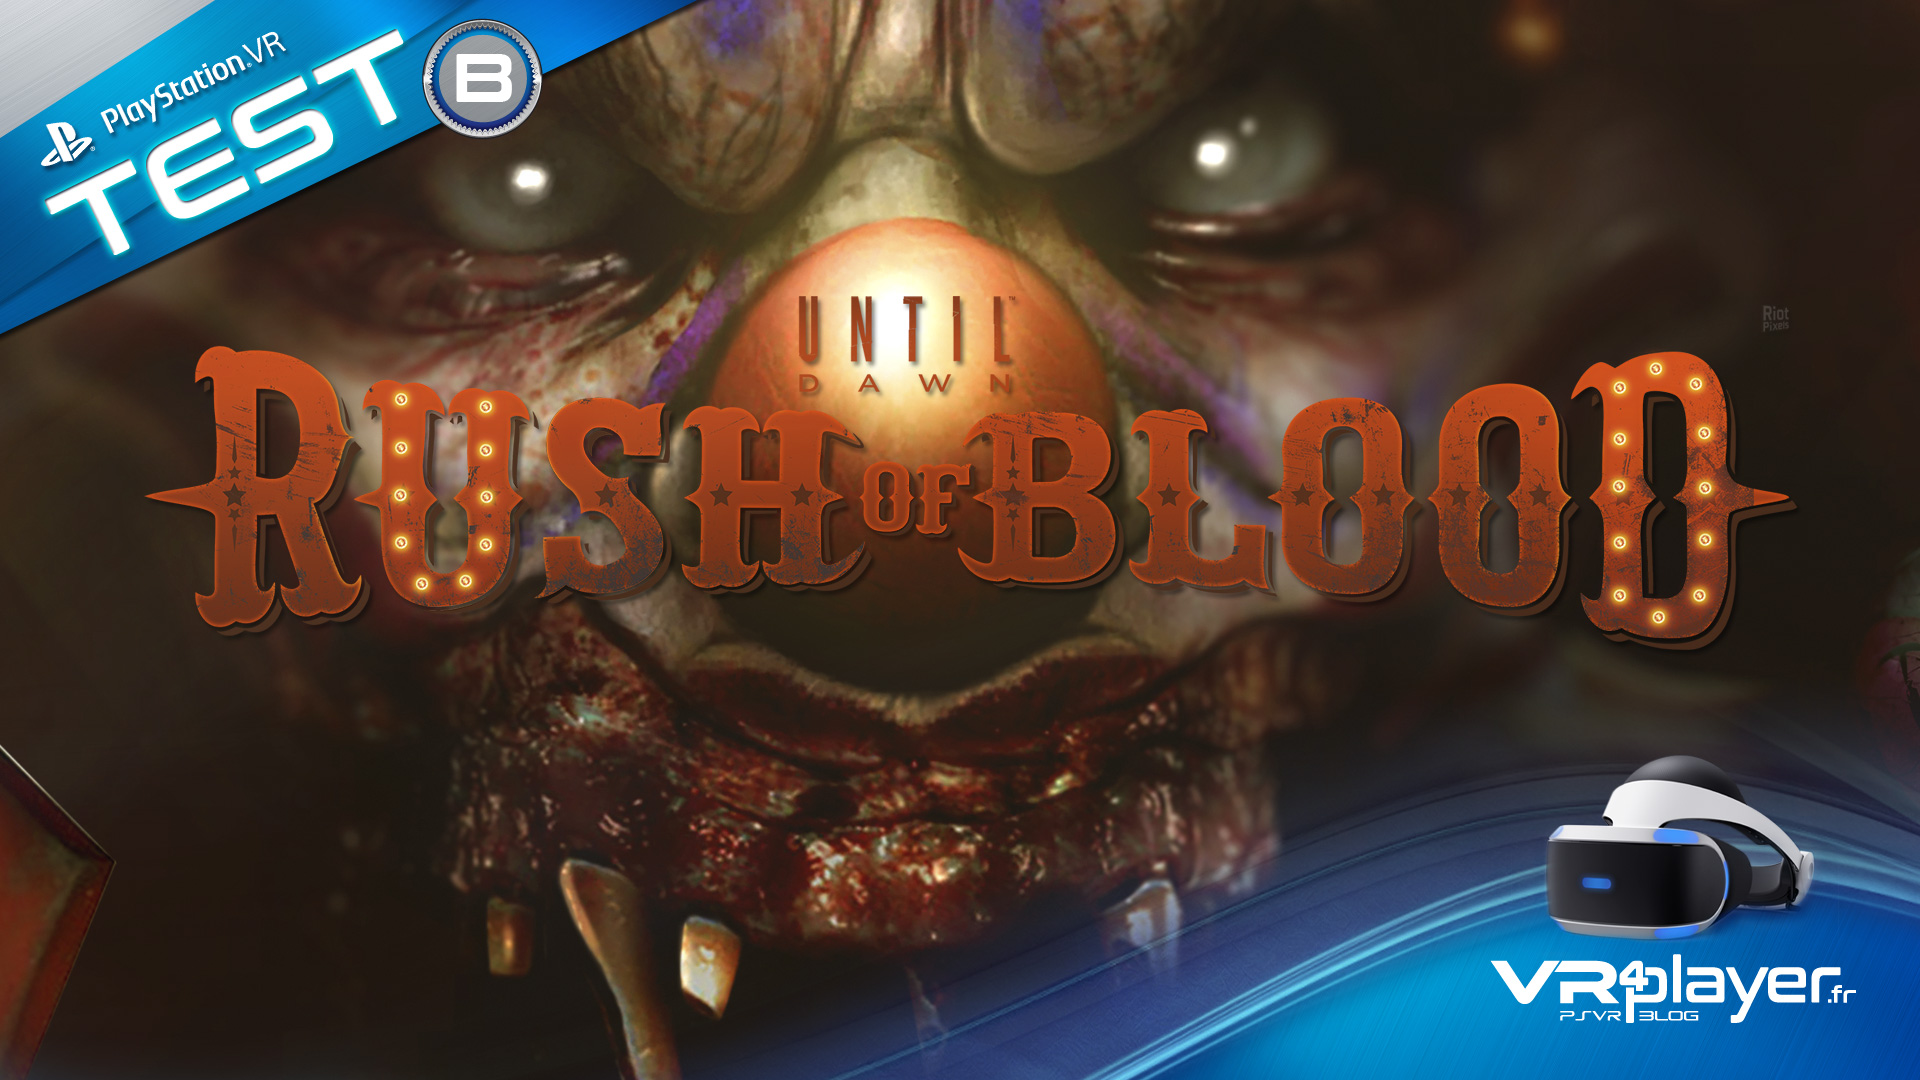 test Until Dawn Rush of Blood sur PSVR vr4player.fr